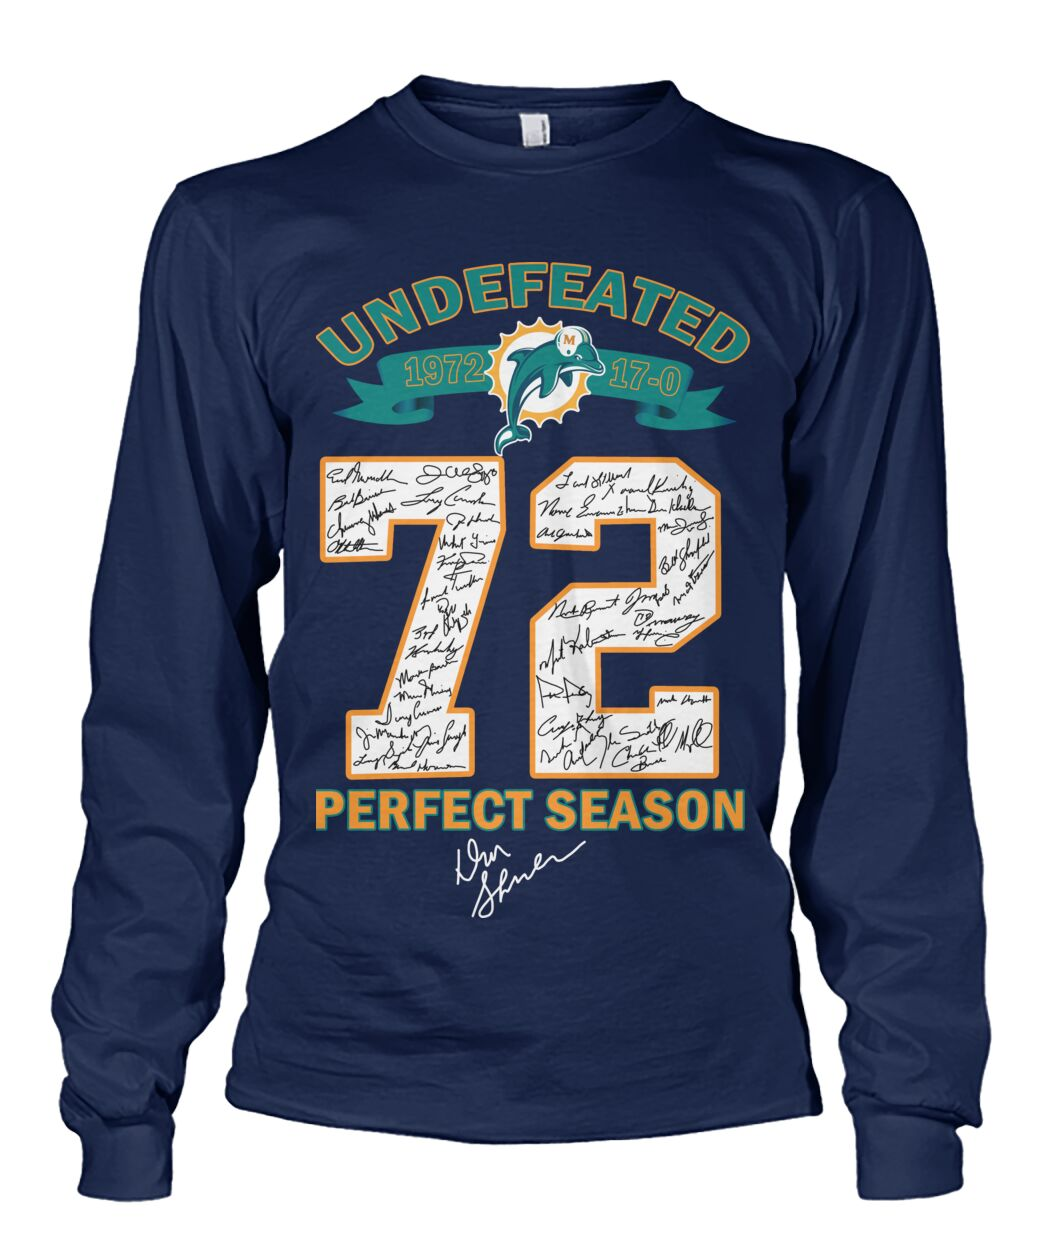 Miami Dolphins Undefeated 72 perfect season shirt 11